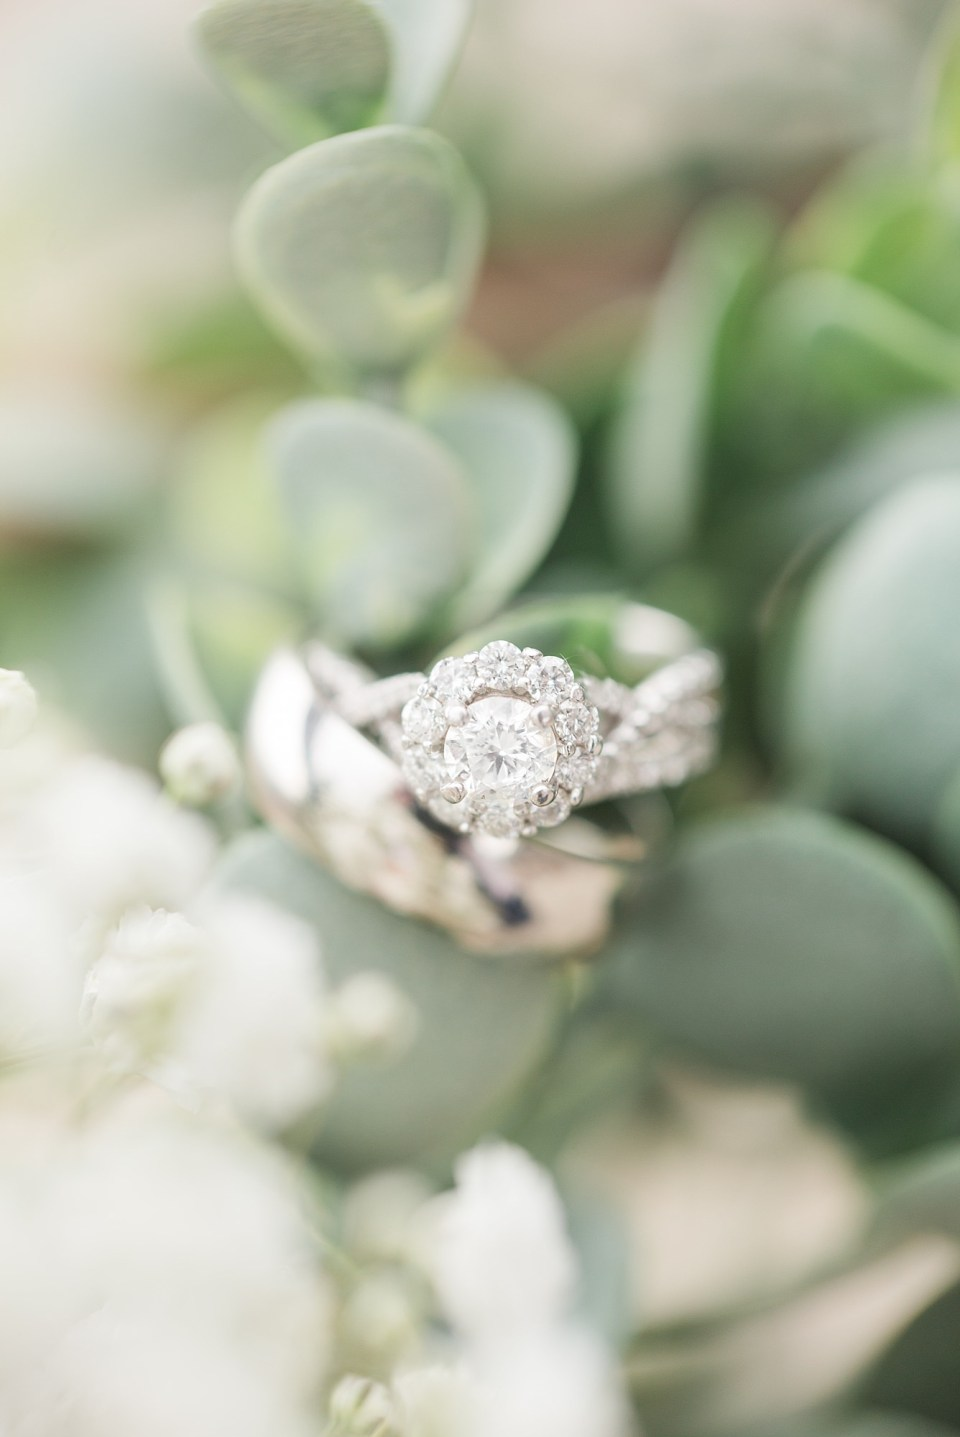 A halo wedding ring with a silver band rest on soft greenery